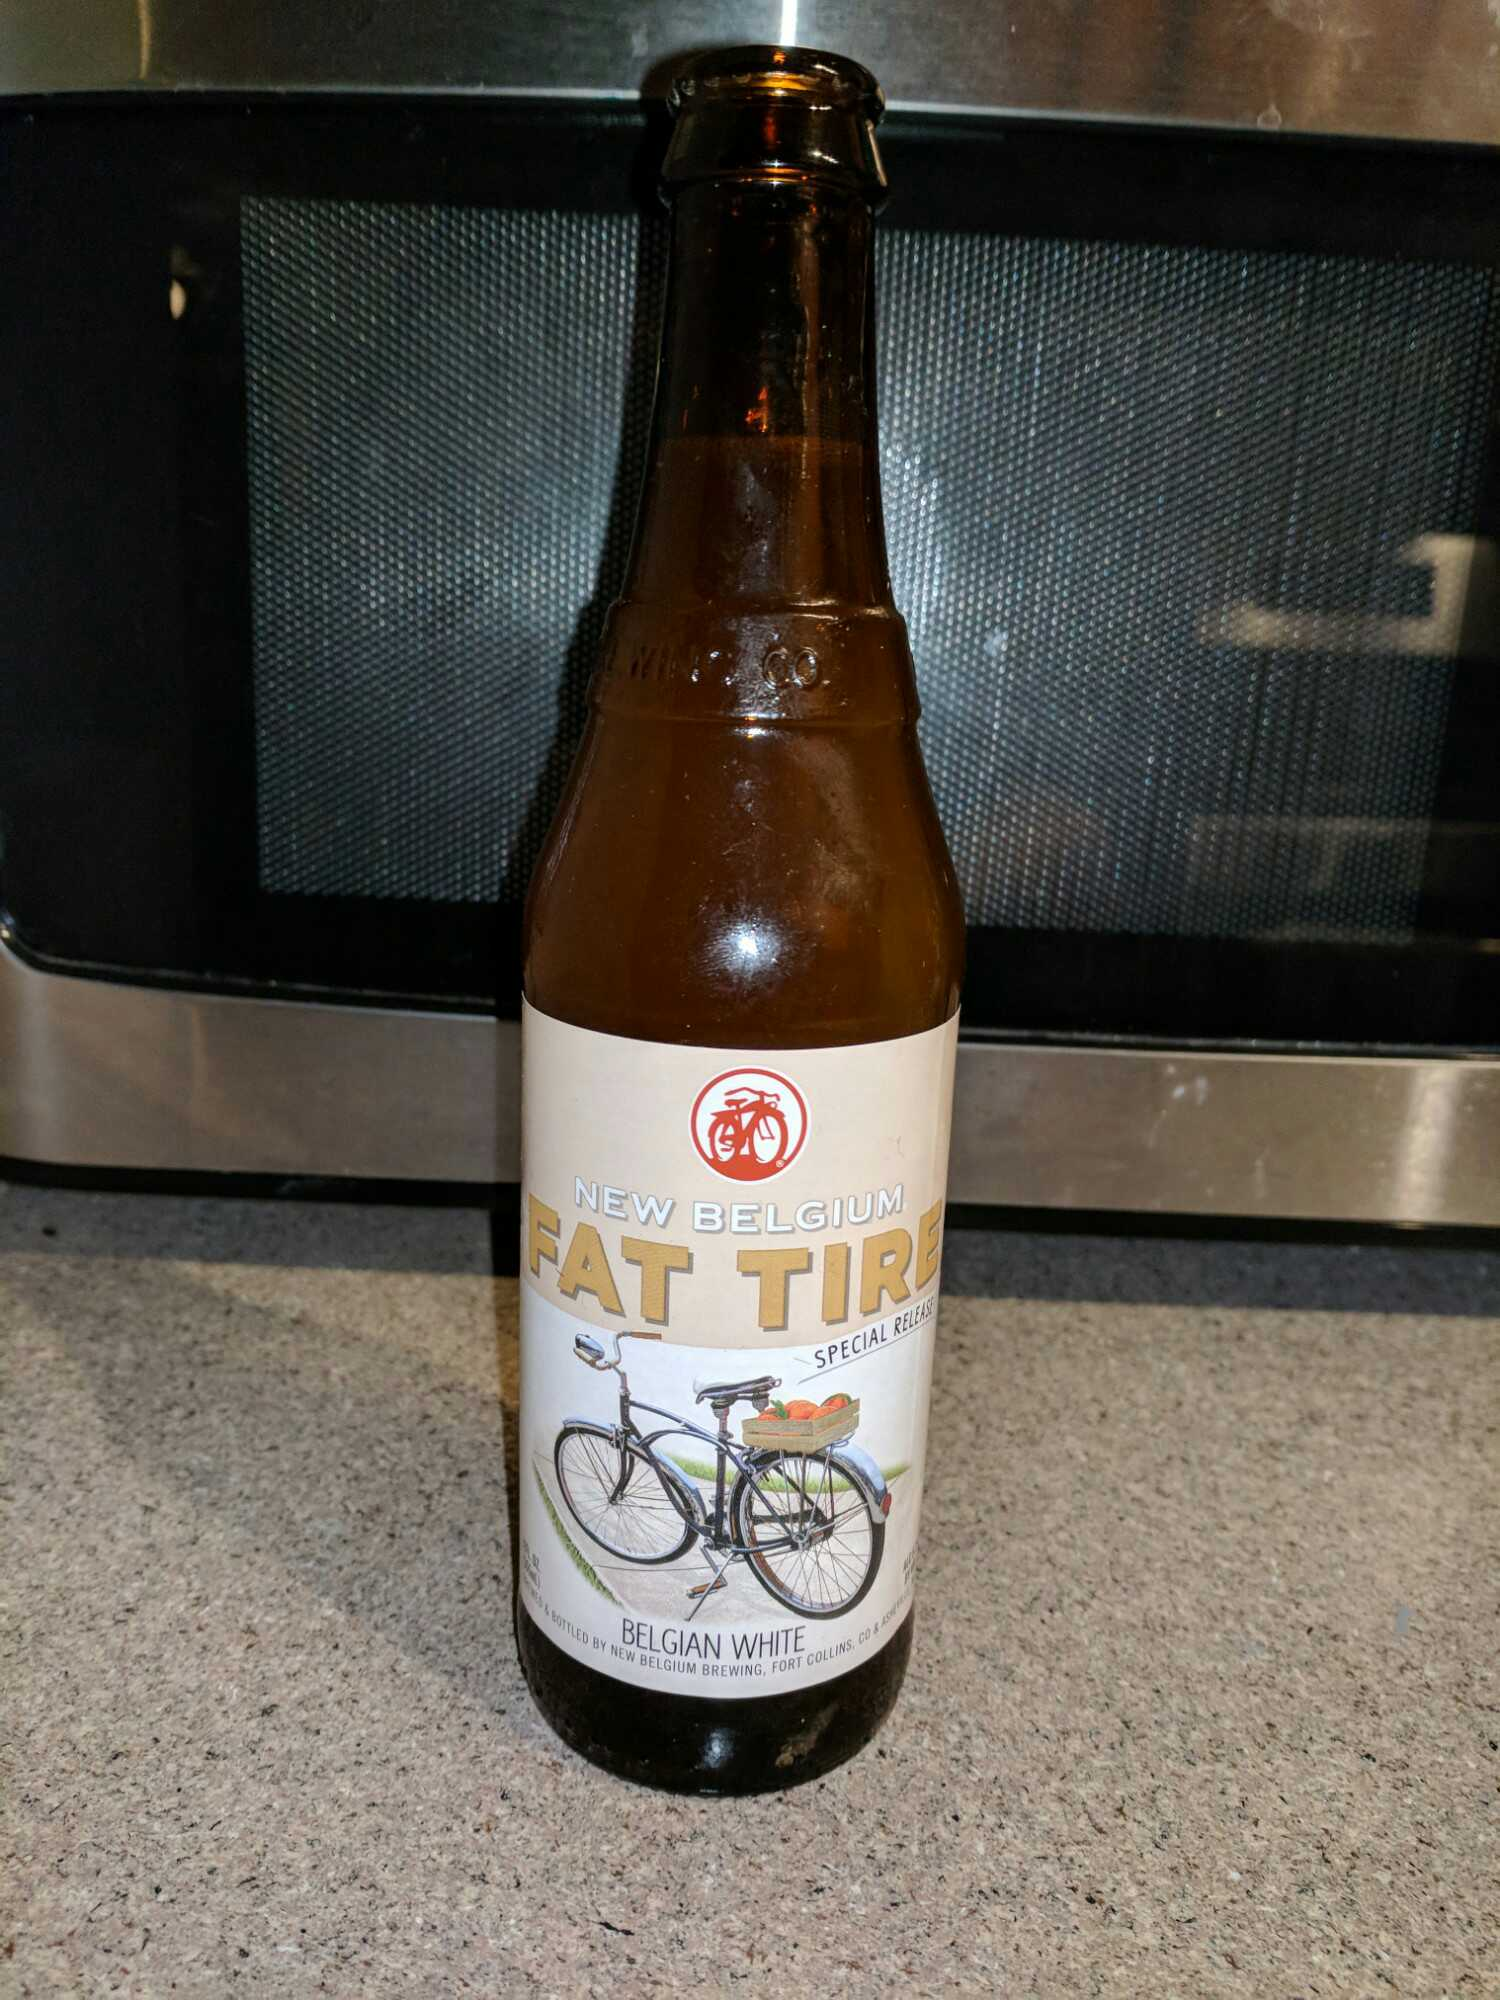 January 14, 2018 New Belgium Brewing Company - Fat Tire Belgian White